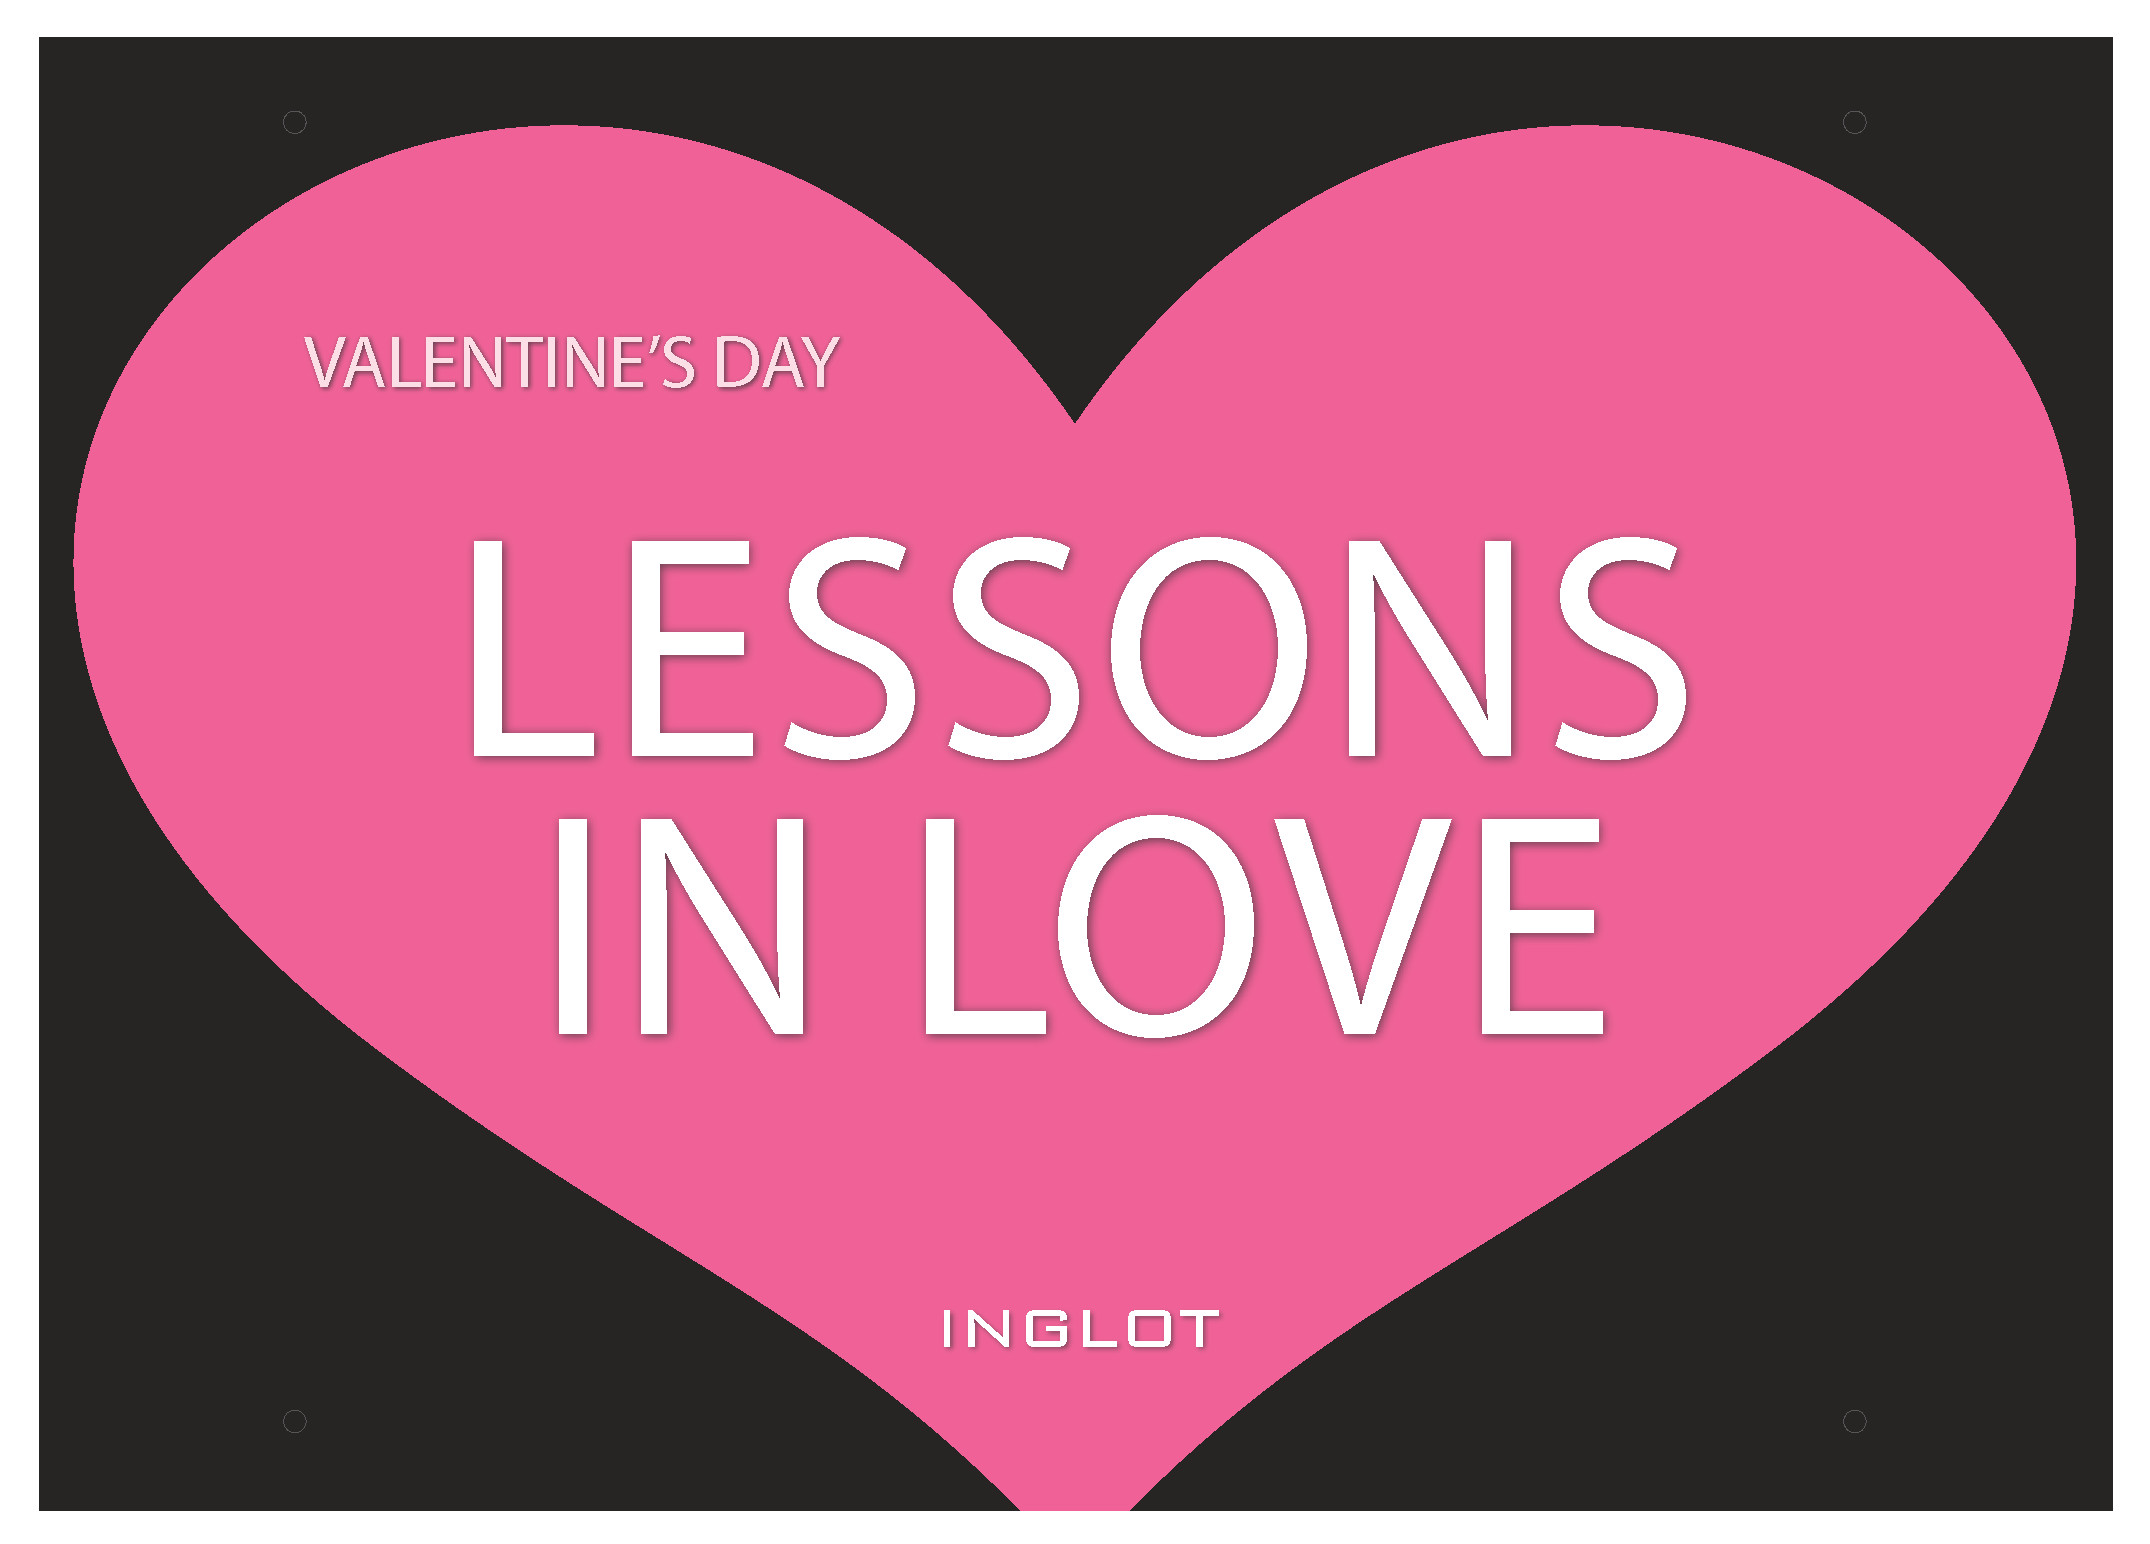 Lessons in Love - introducing INGLOT's Valentine's Day promotion